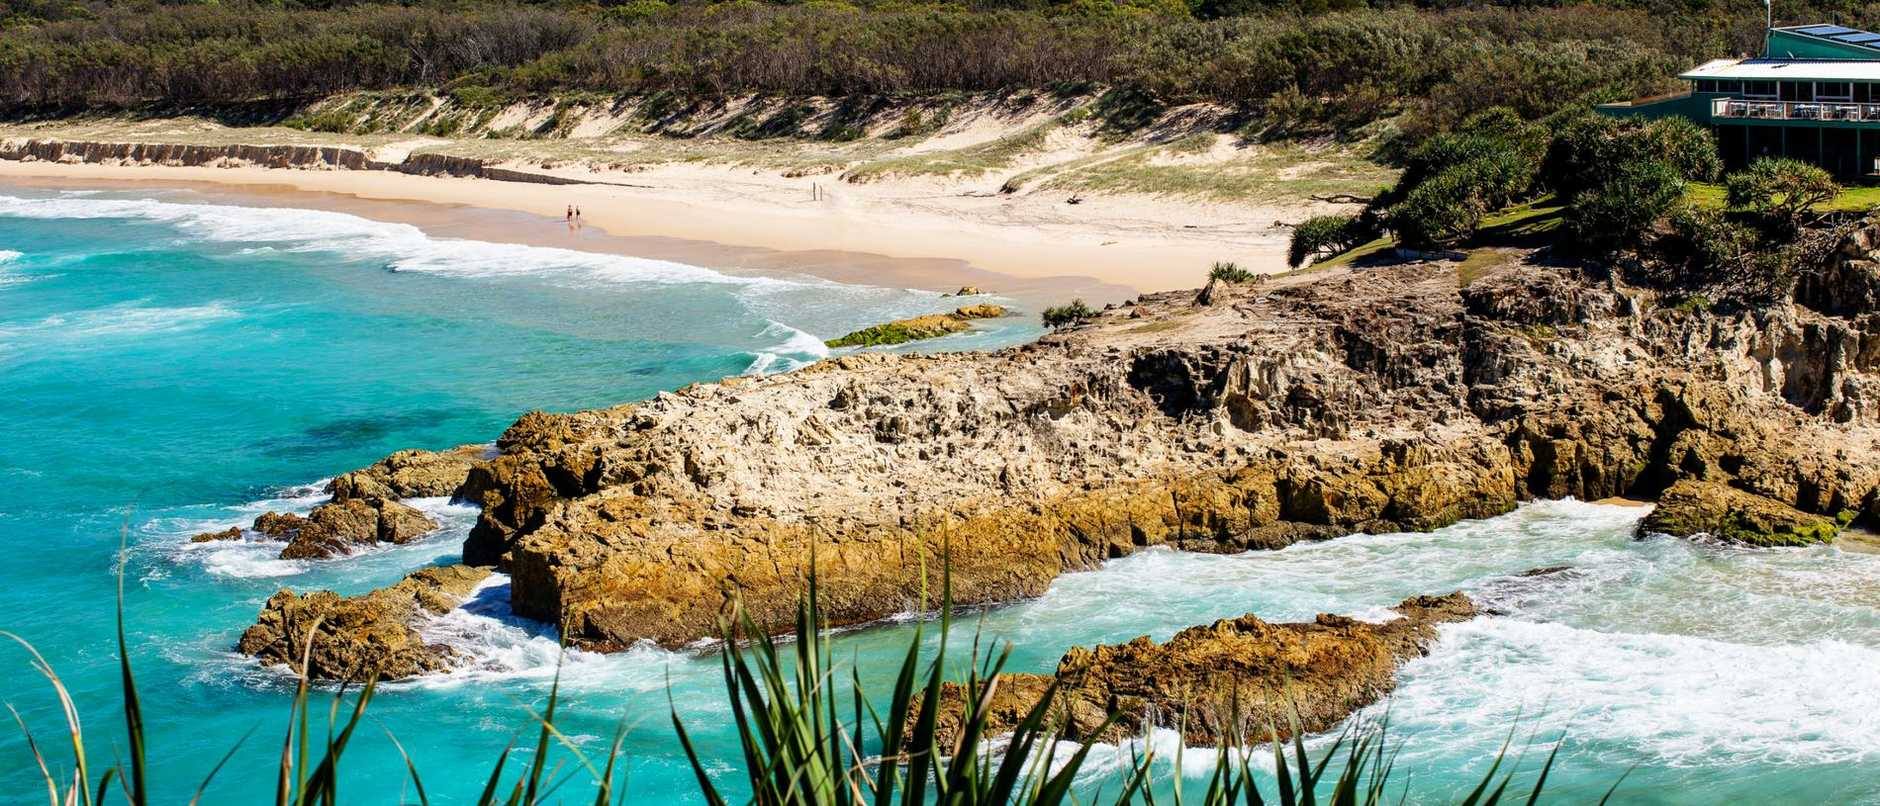 If you live in one of these postcodes and want to book a camping trip on North Stradbroke Island this weekend you can forget about it.